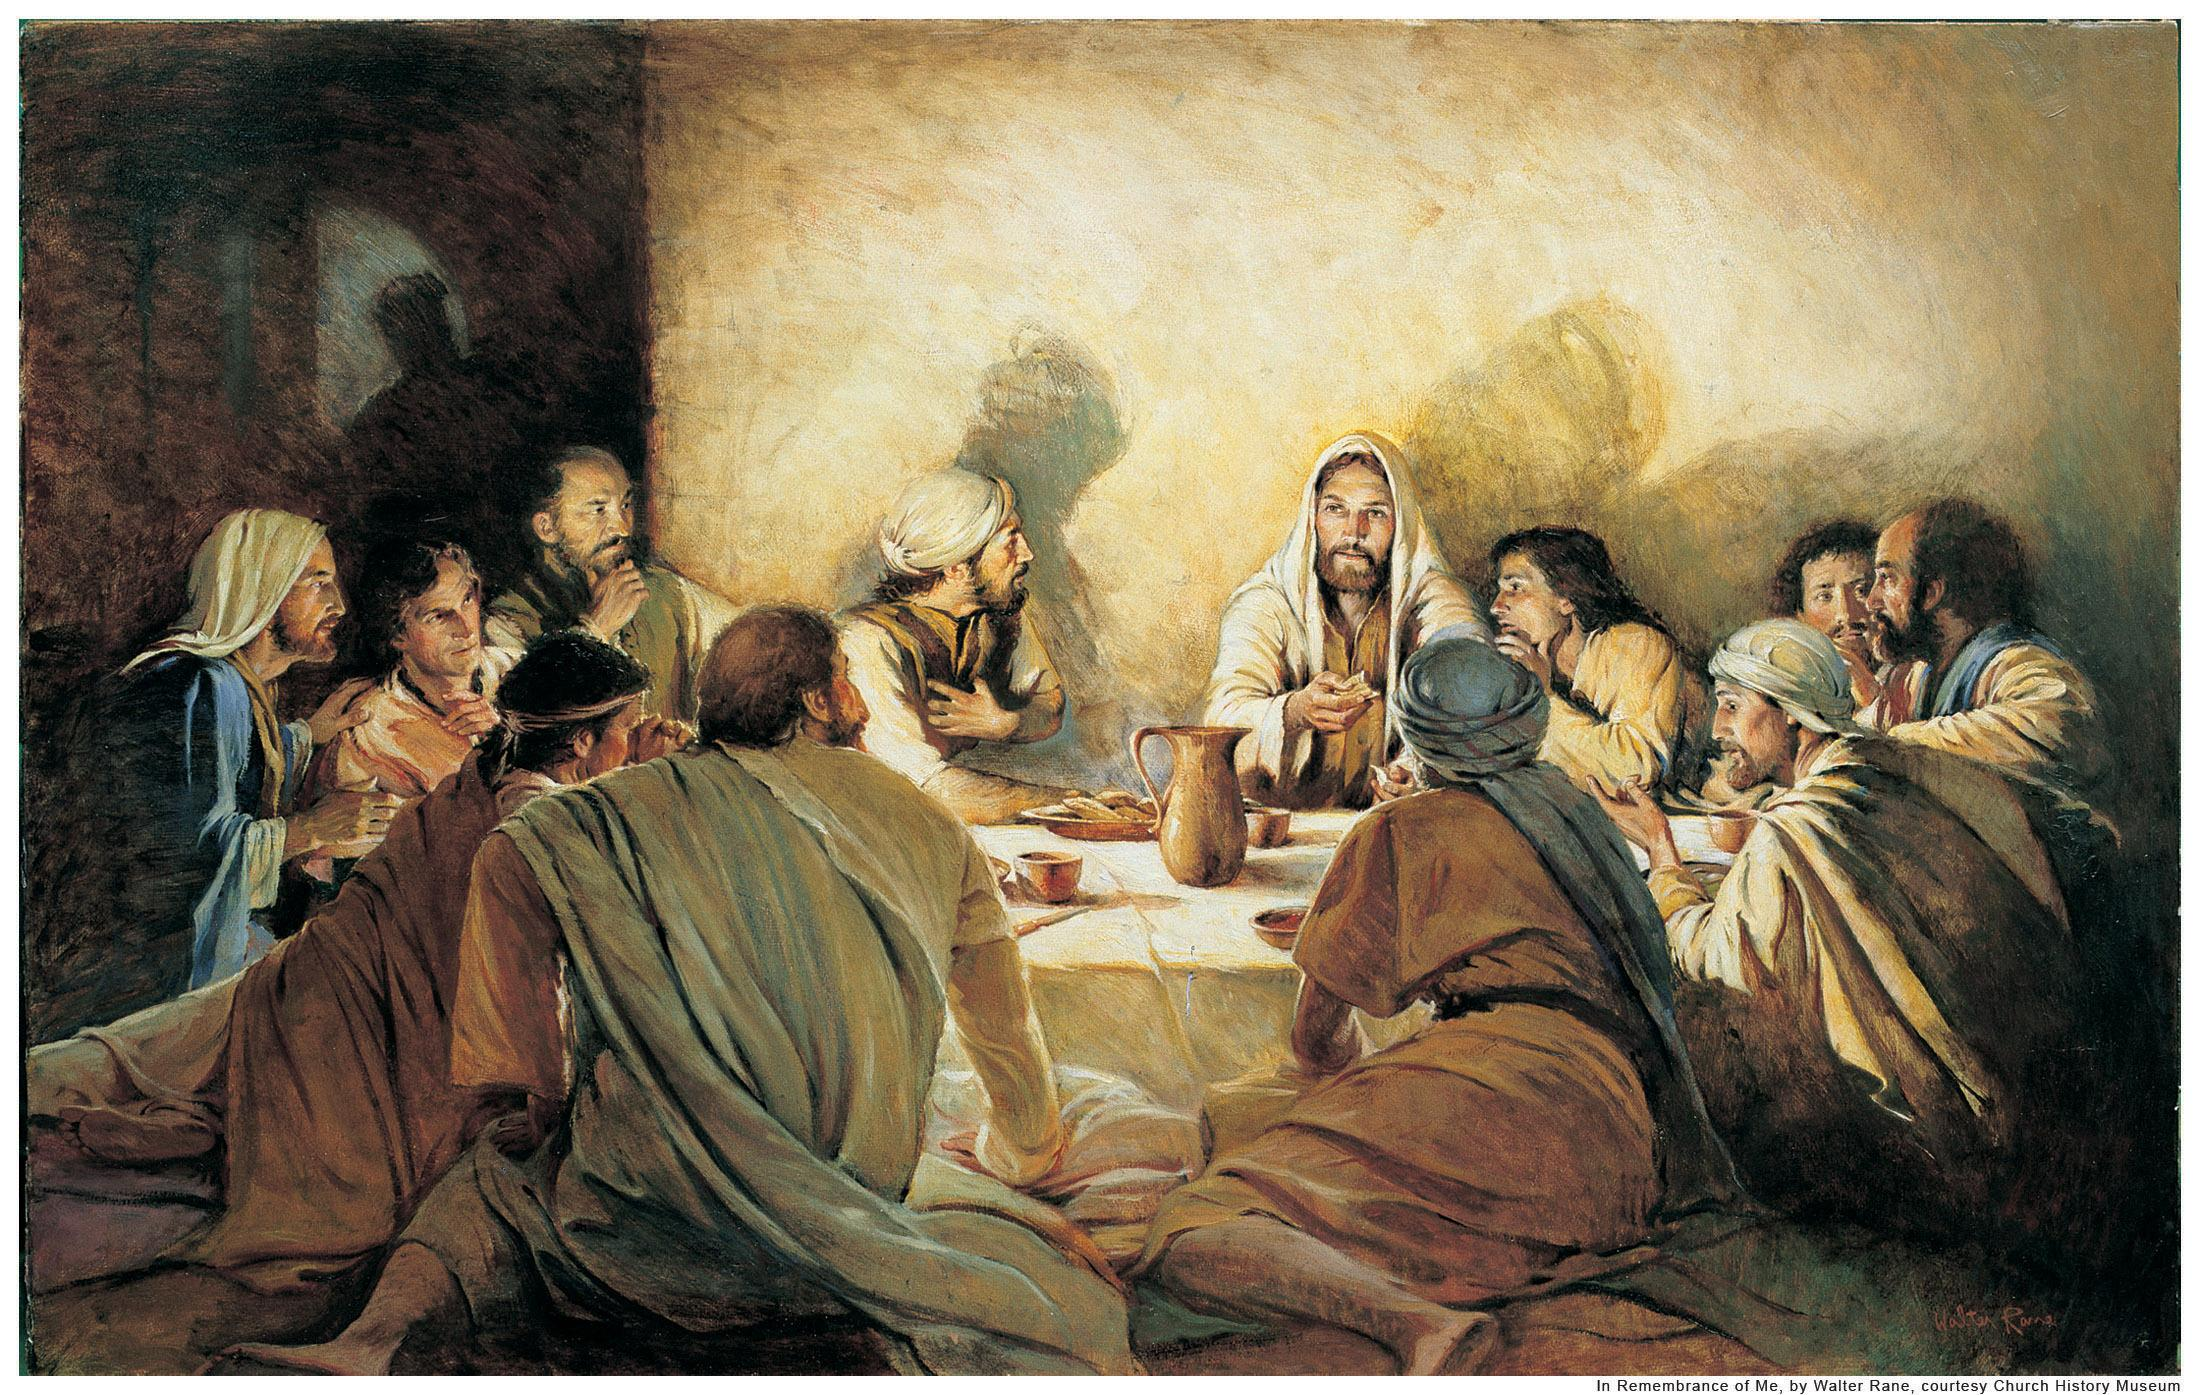 Download 2200x1395 Jesus At Passover wallpaper